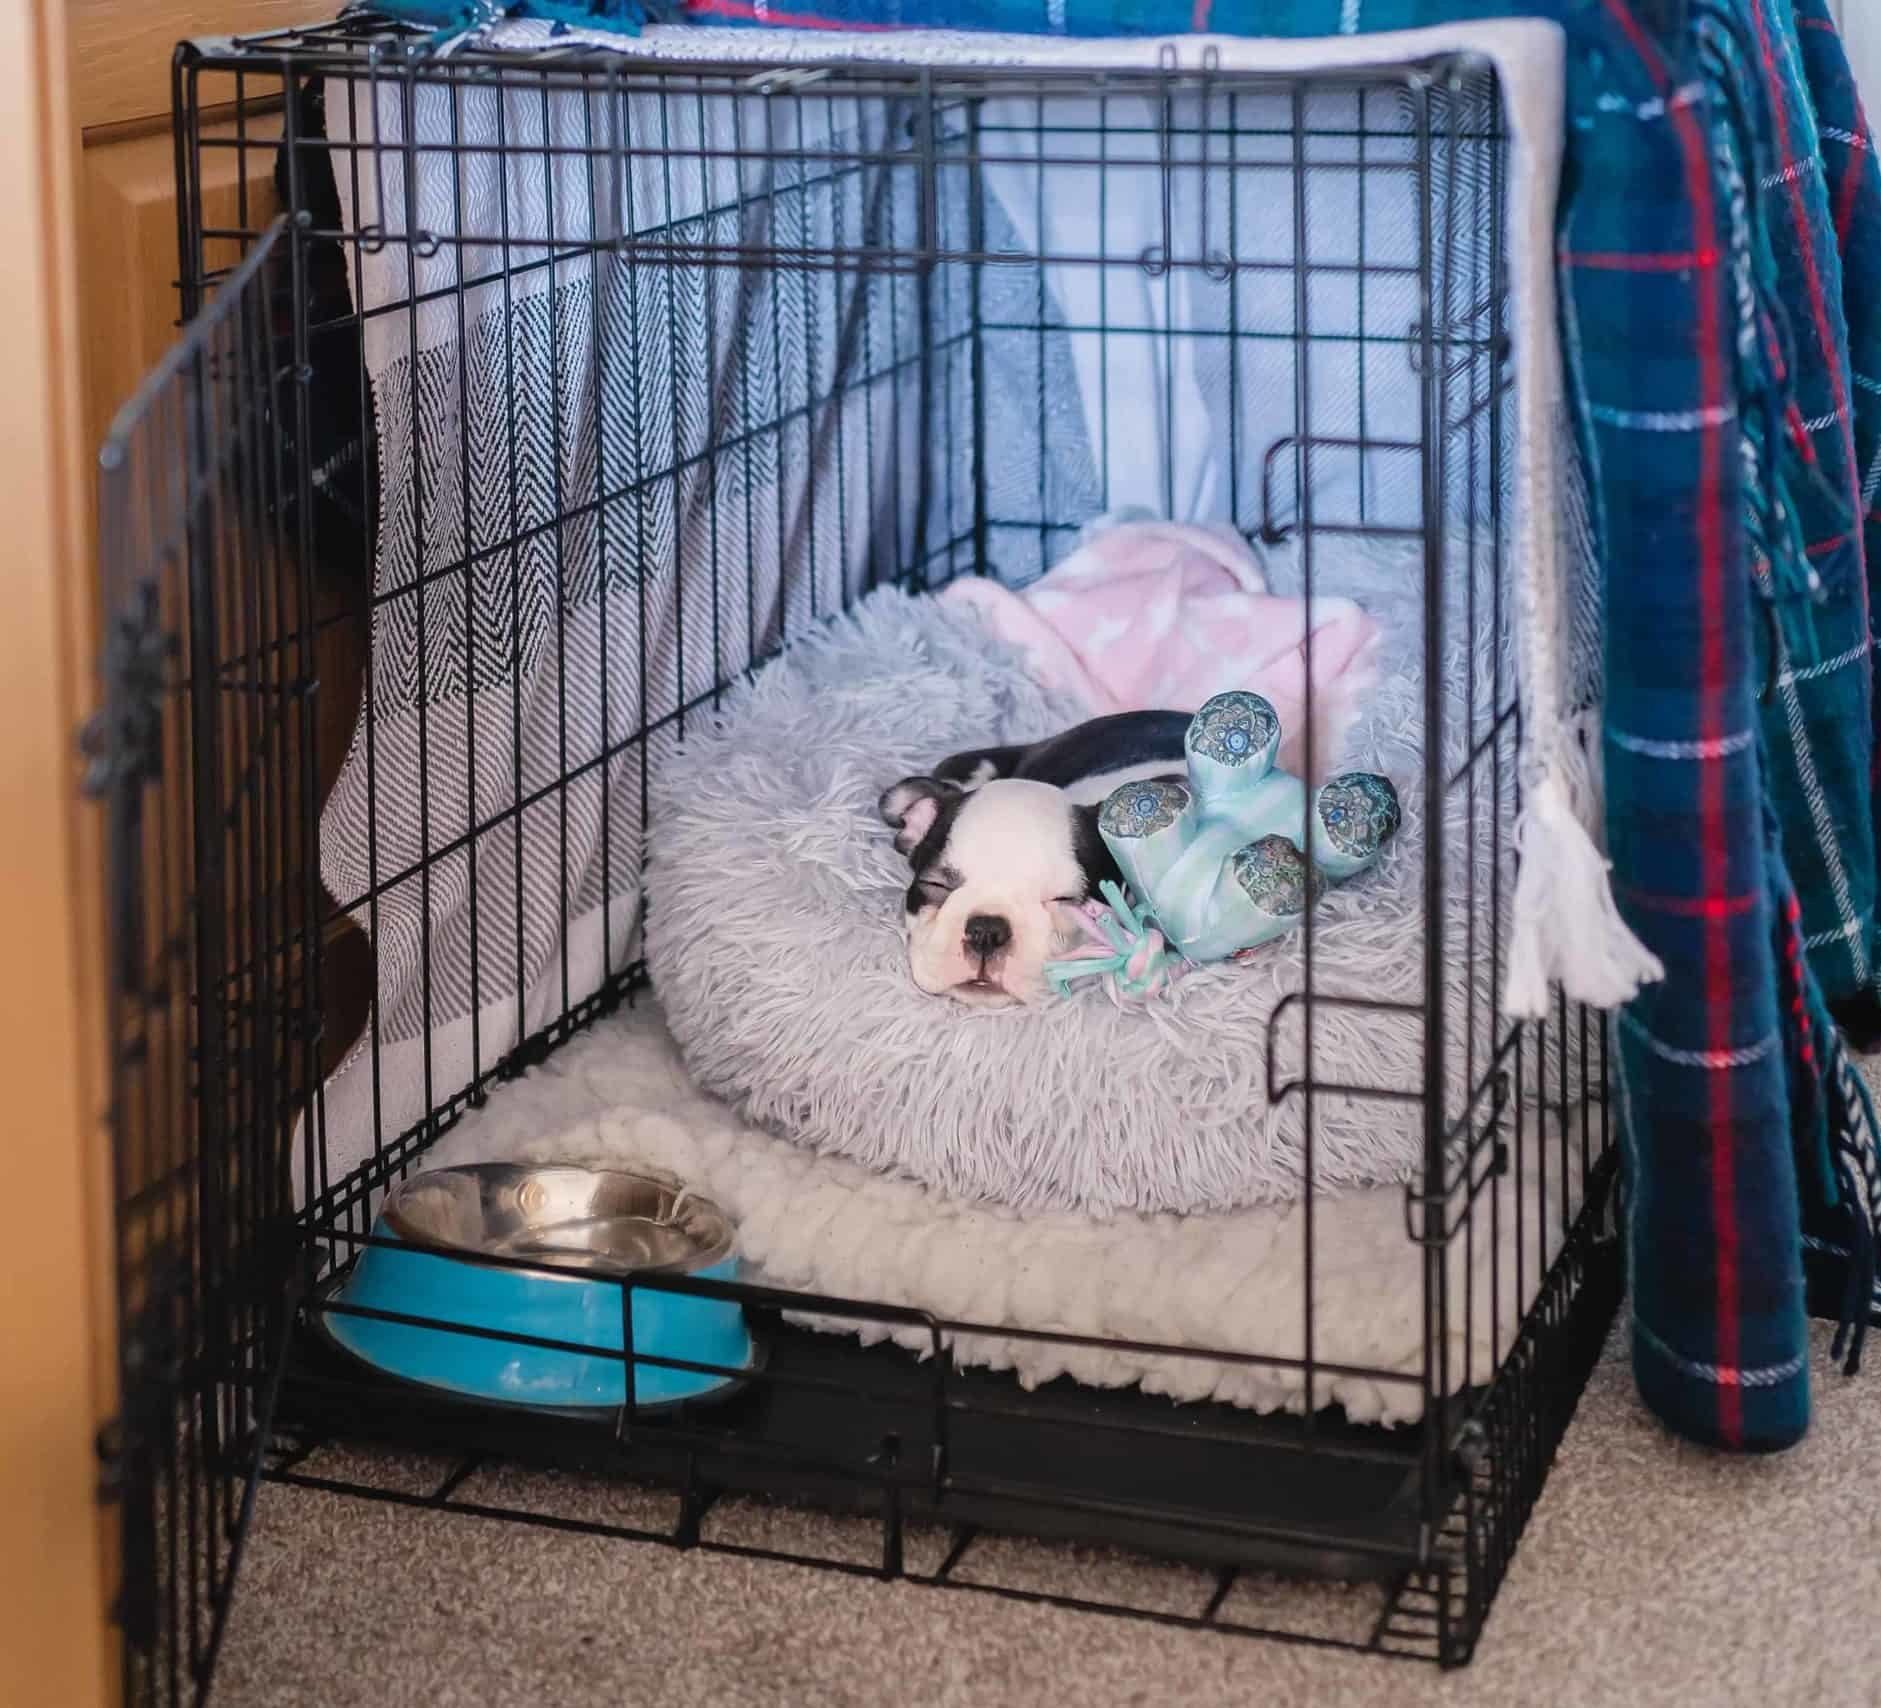 Boston Terrier puppy sleeps in open crate. To teach your puppy alone time, start by choosing a safe confinement area such as a crate, exercise pen, or a small room.